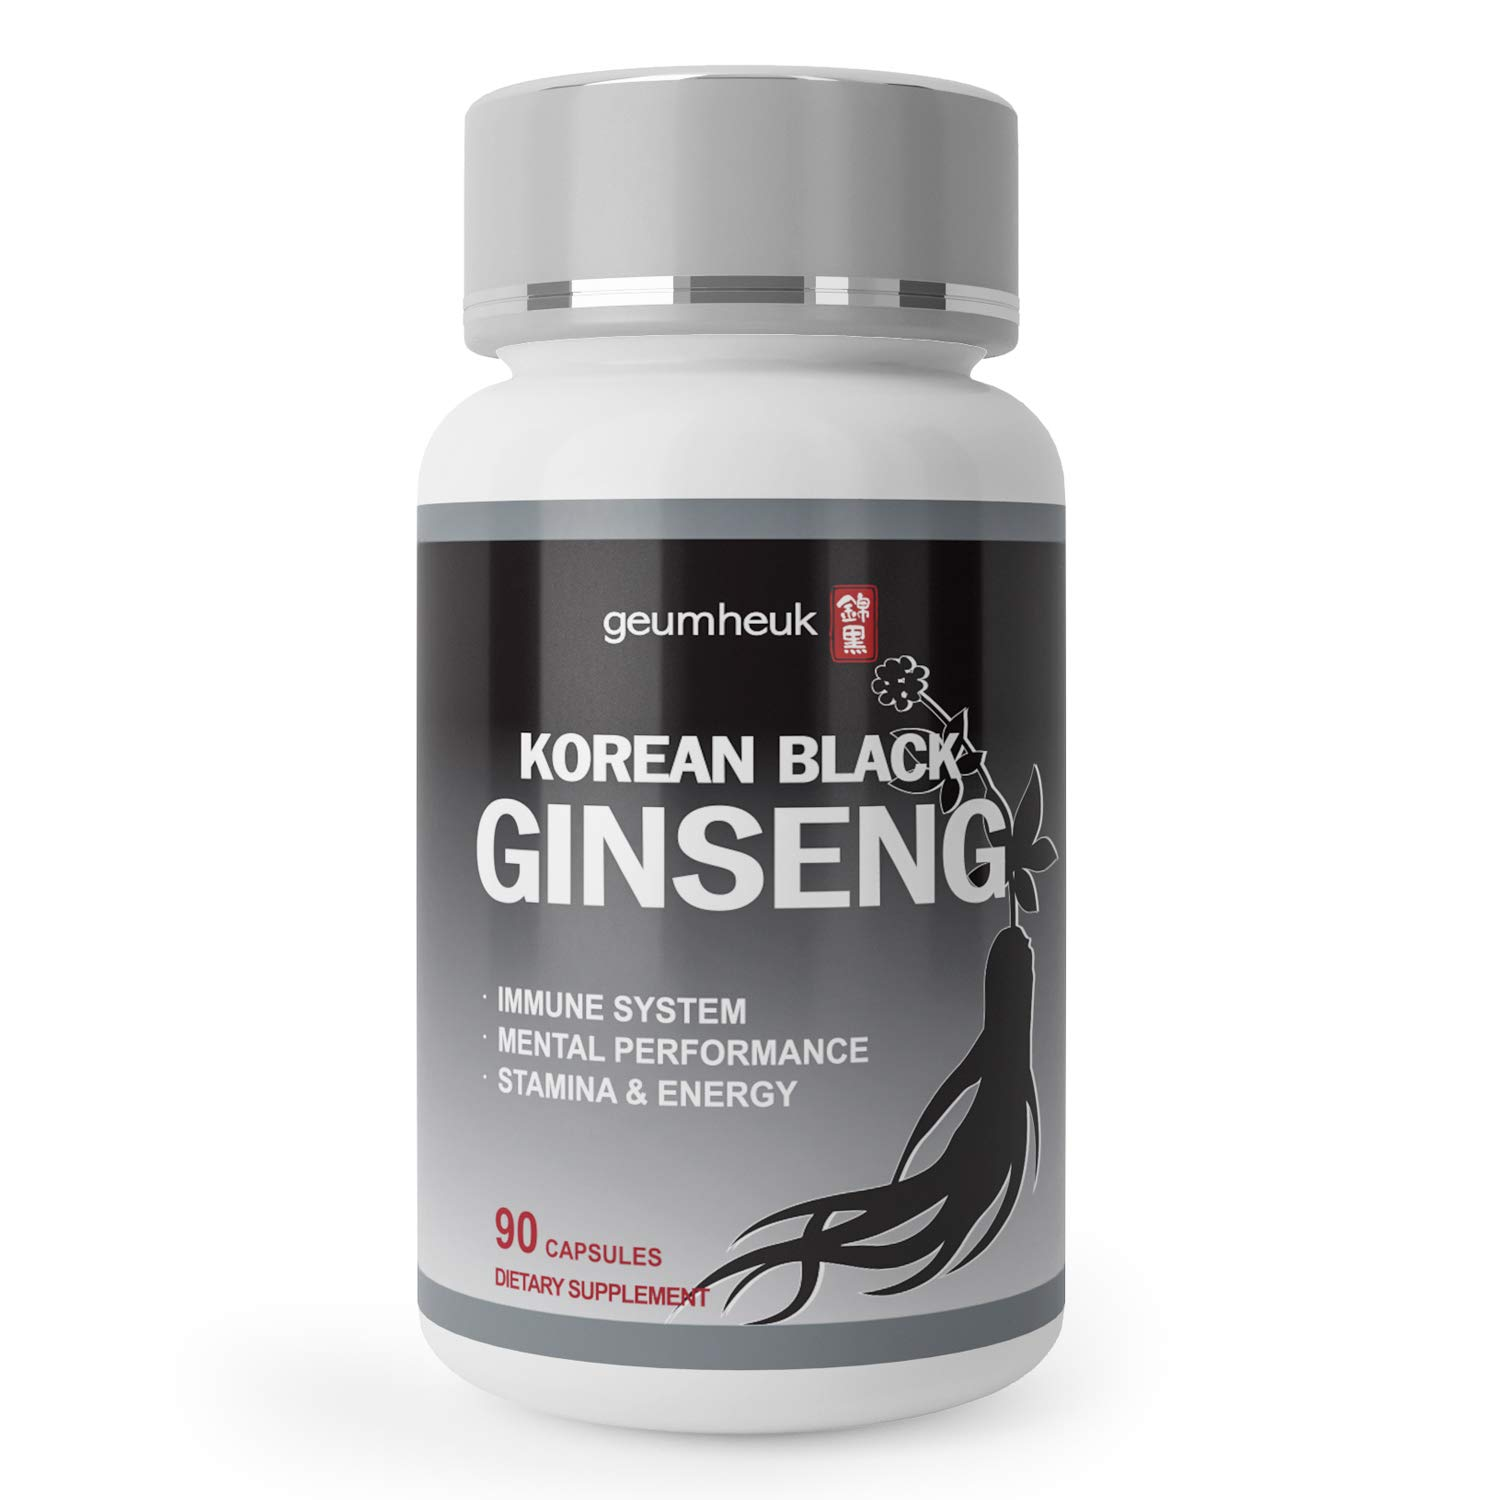 SKU 0132-4, Hsu s Ginseng Half Short Medium Cultivated American Ginseng Roots 4 oz 113 gm Box , with one Free Single American Ginseng Tea Bag, 132-4, 132.4